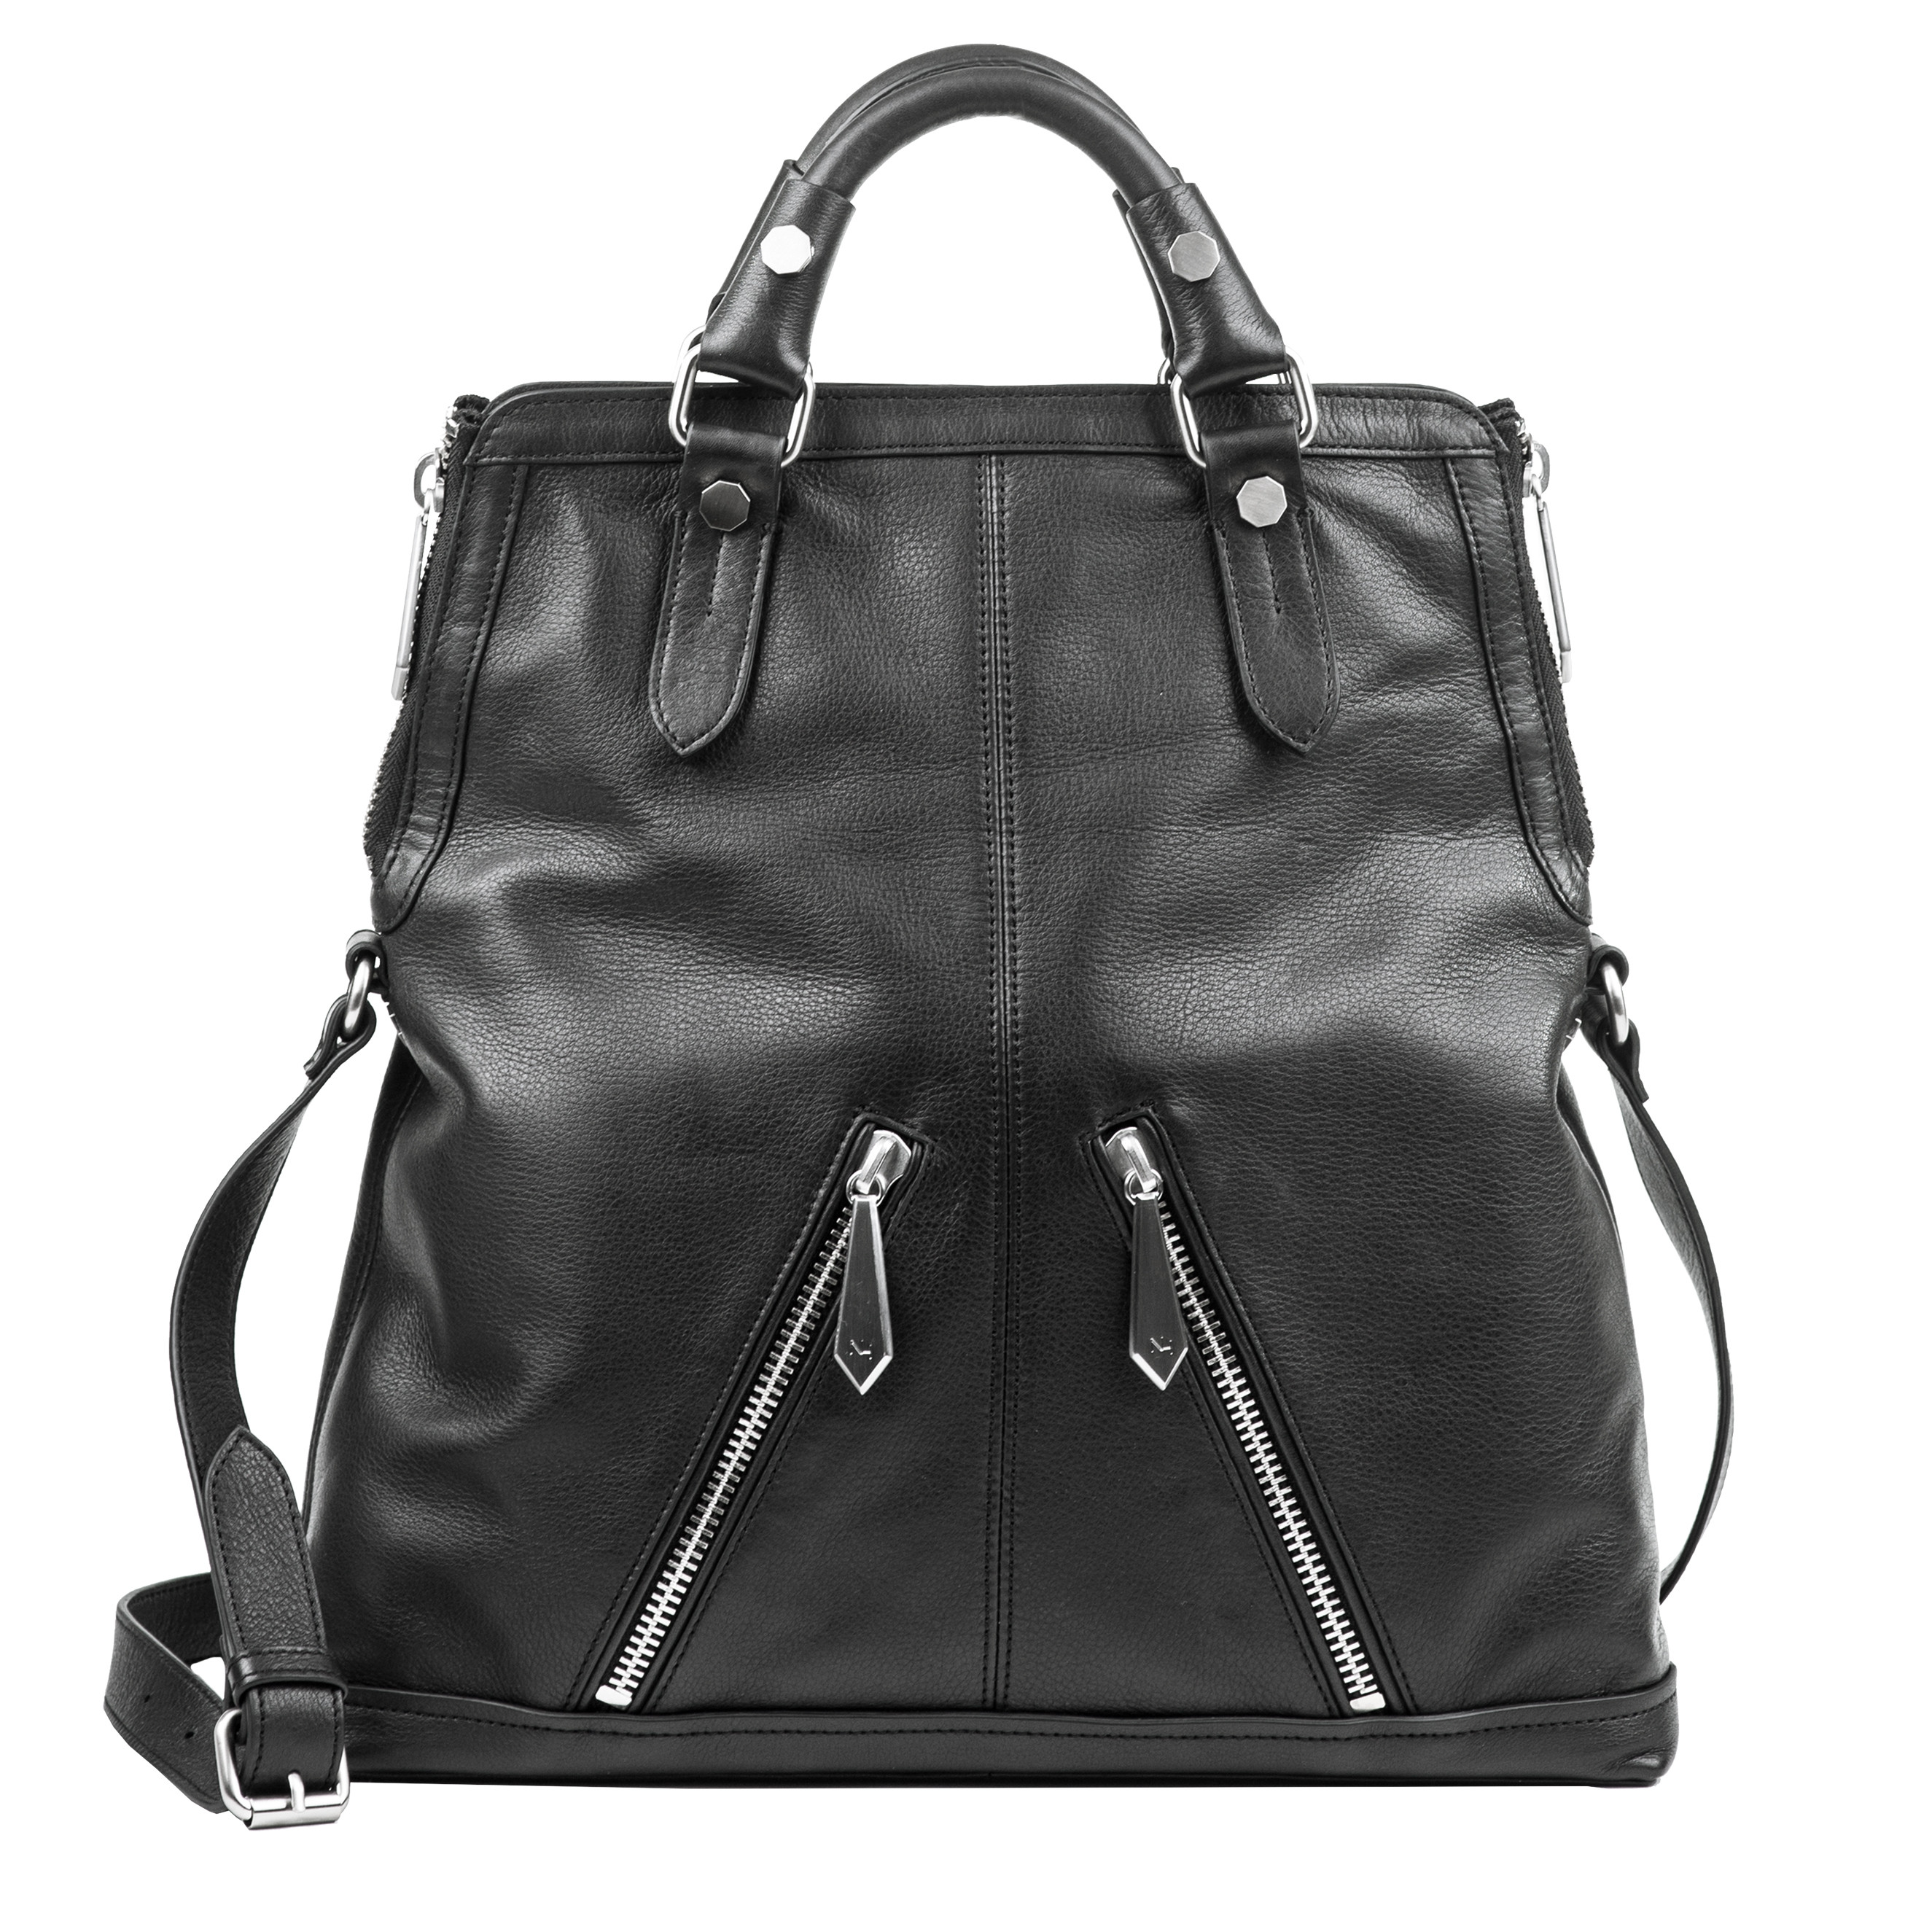 Nicky Hilton Styles Her New Handbags with 5 of Fall s Hottest Trends ... 161da999d9a7a